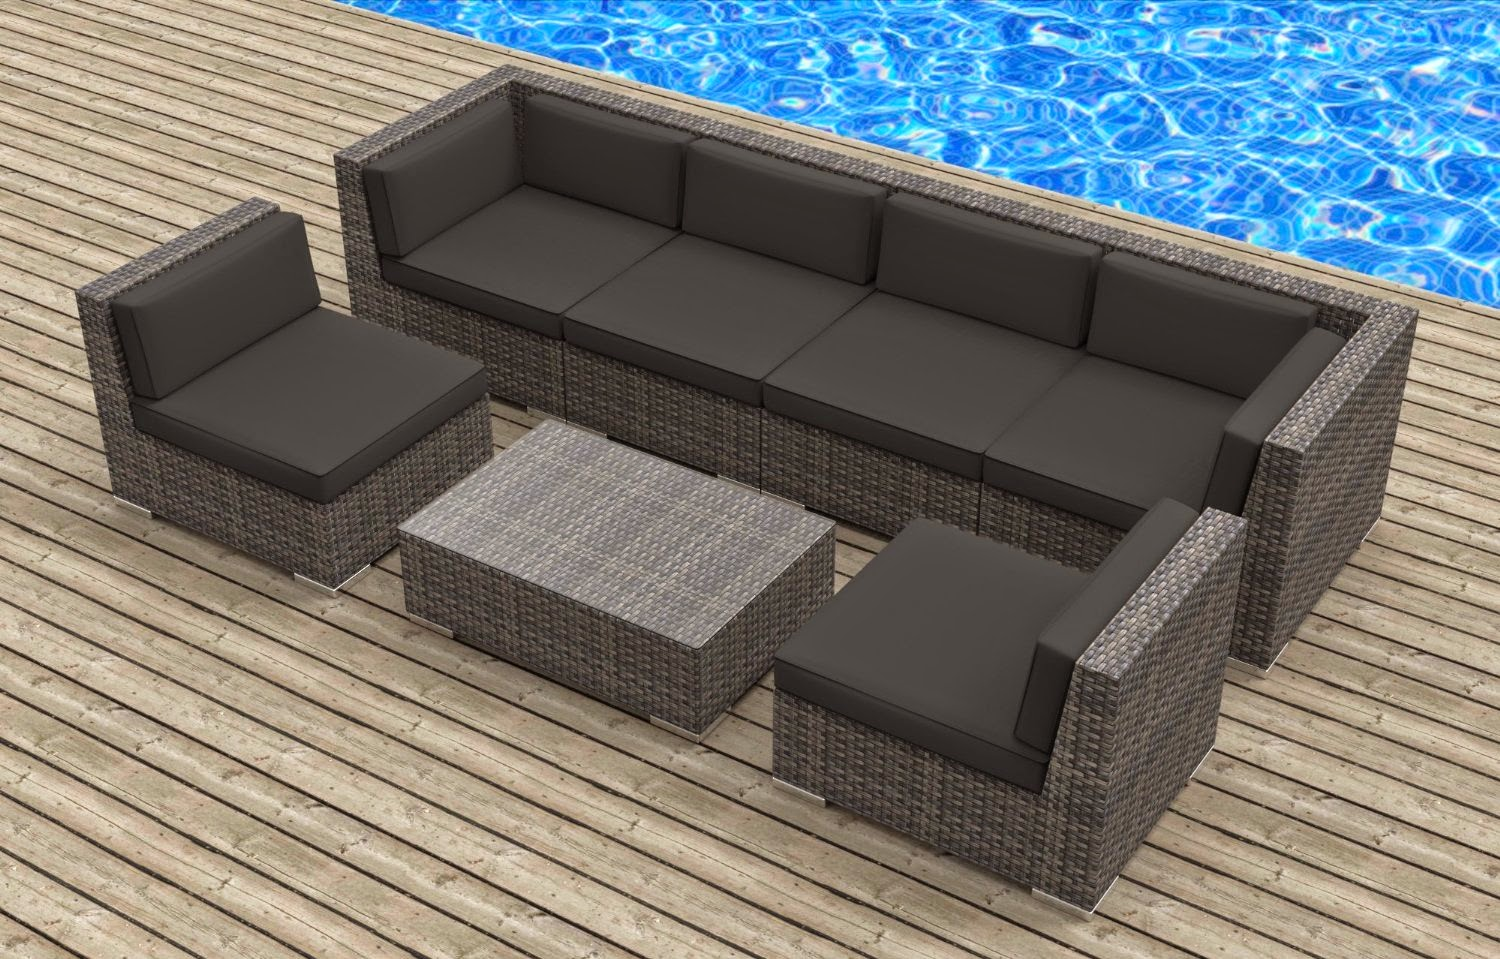 Urban furnishing modern outdoor backyard wicker rattan for Rattan outdoor furniture